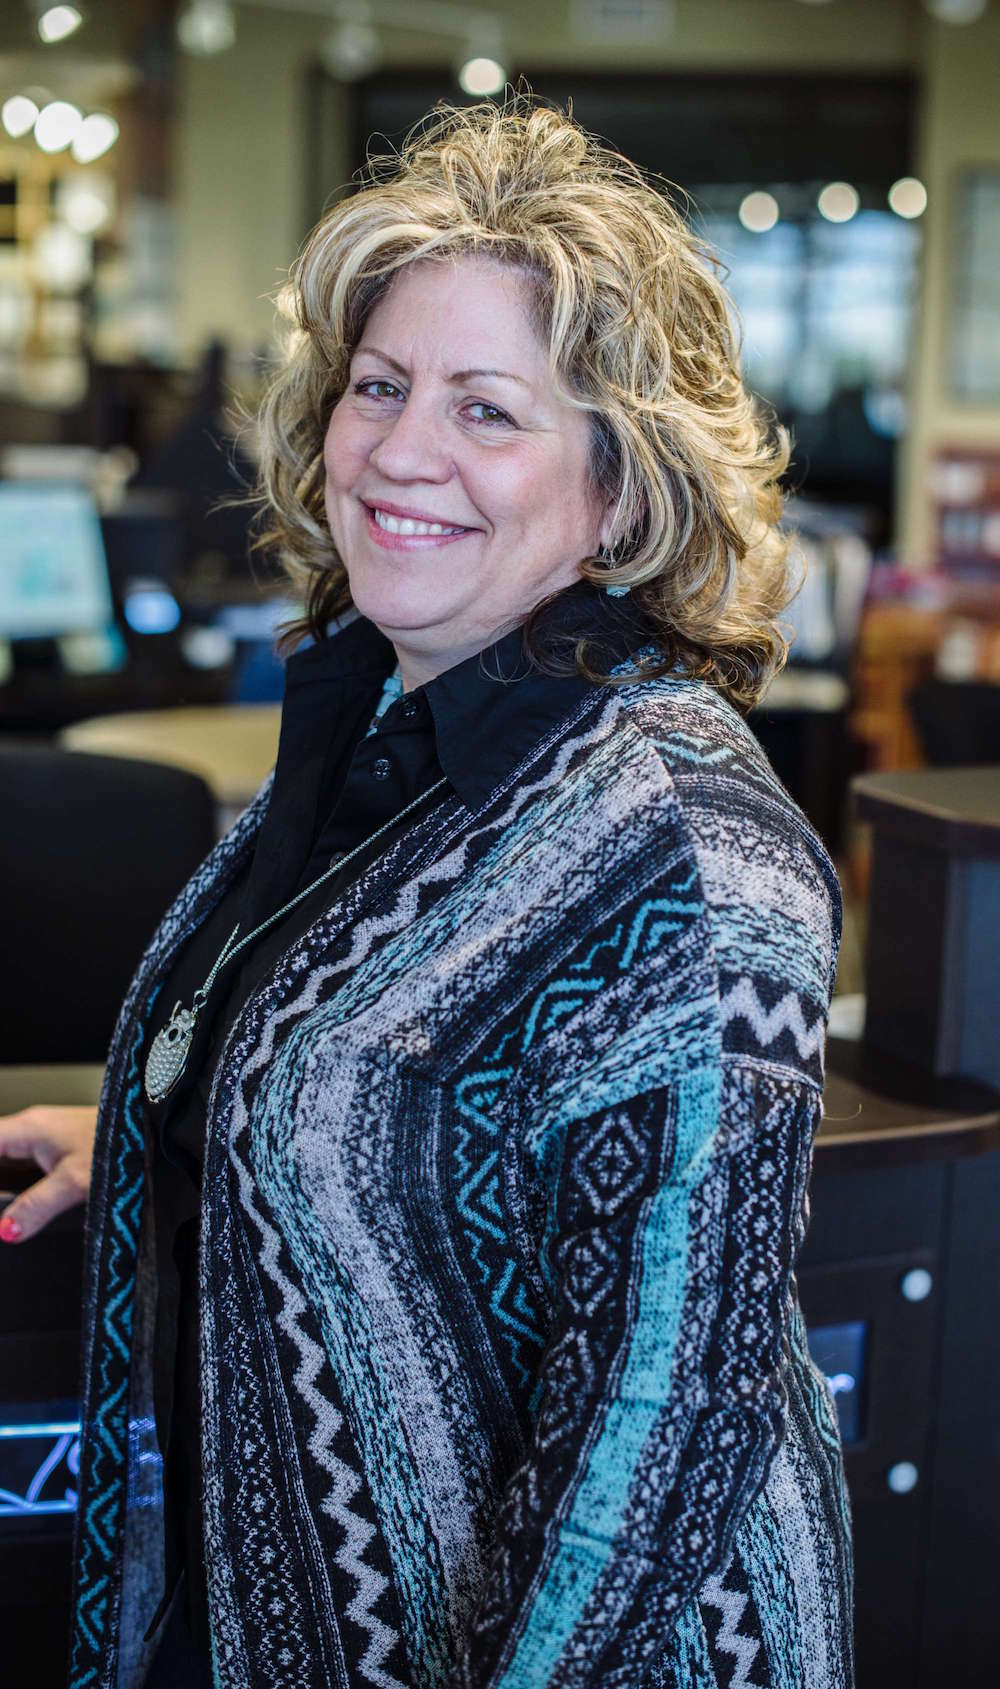 Vicki Wren-Eultgen, color specialist at JPD!